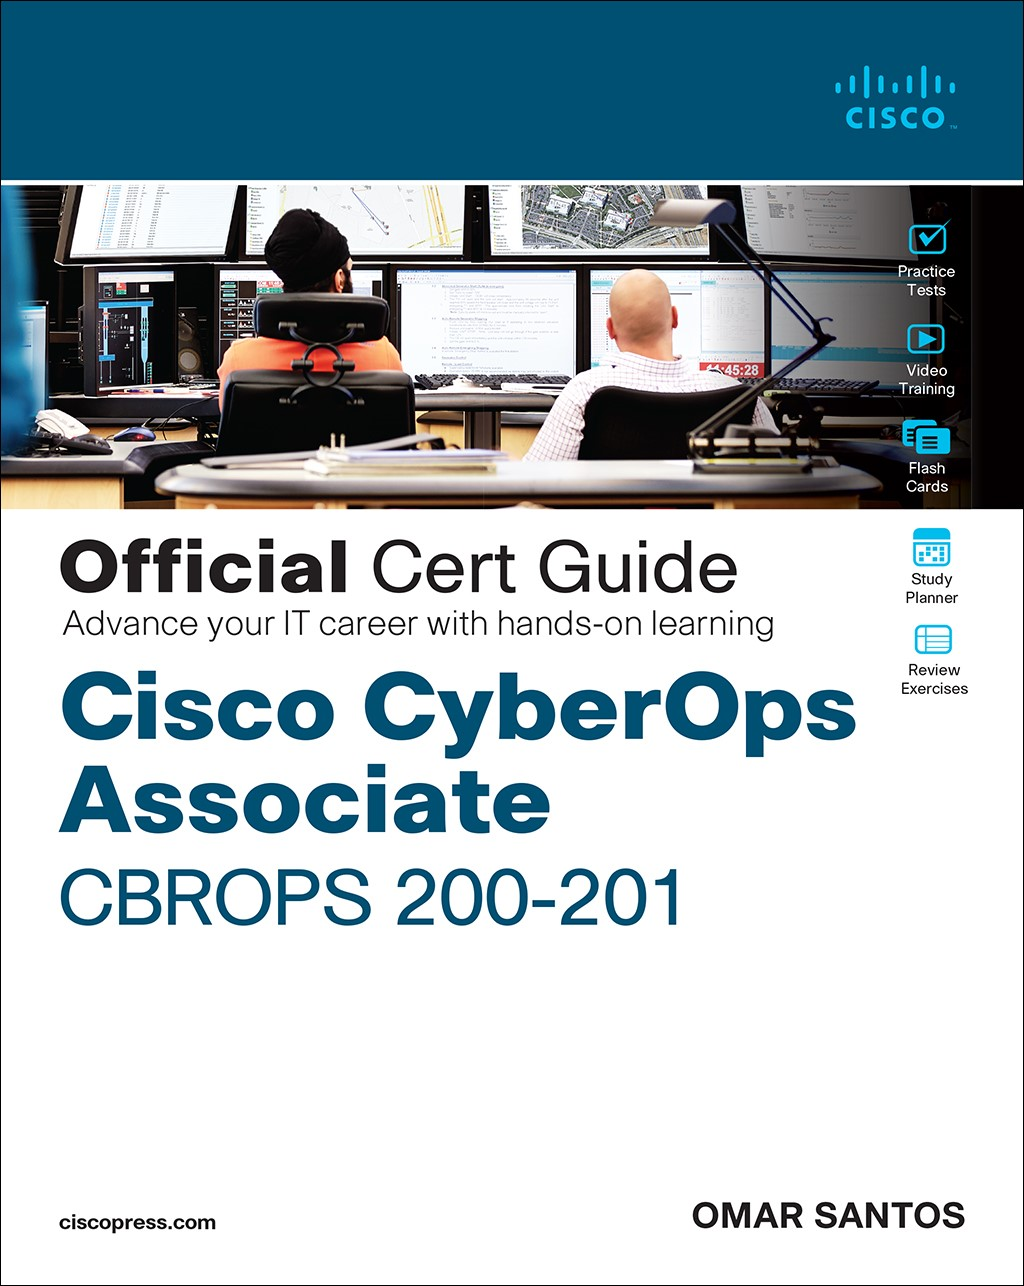 Cisco CyberOps Associate CBROPS 200-201 Official Cert Guide